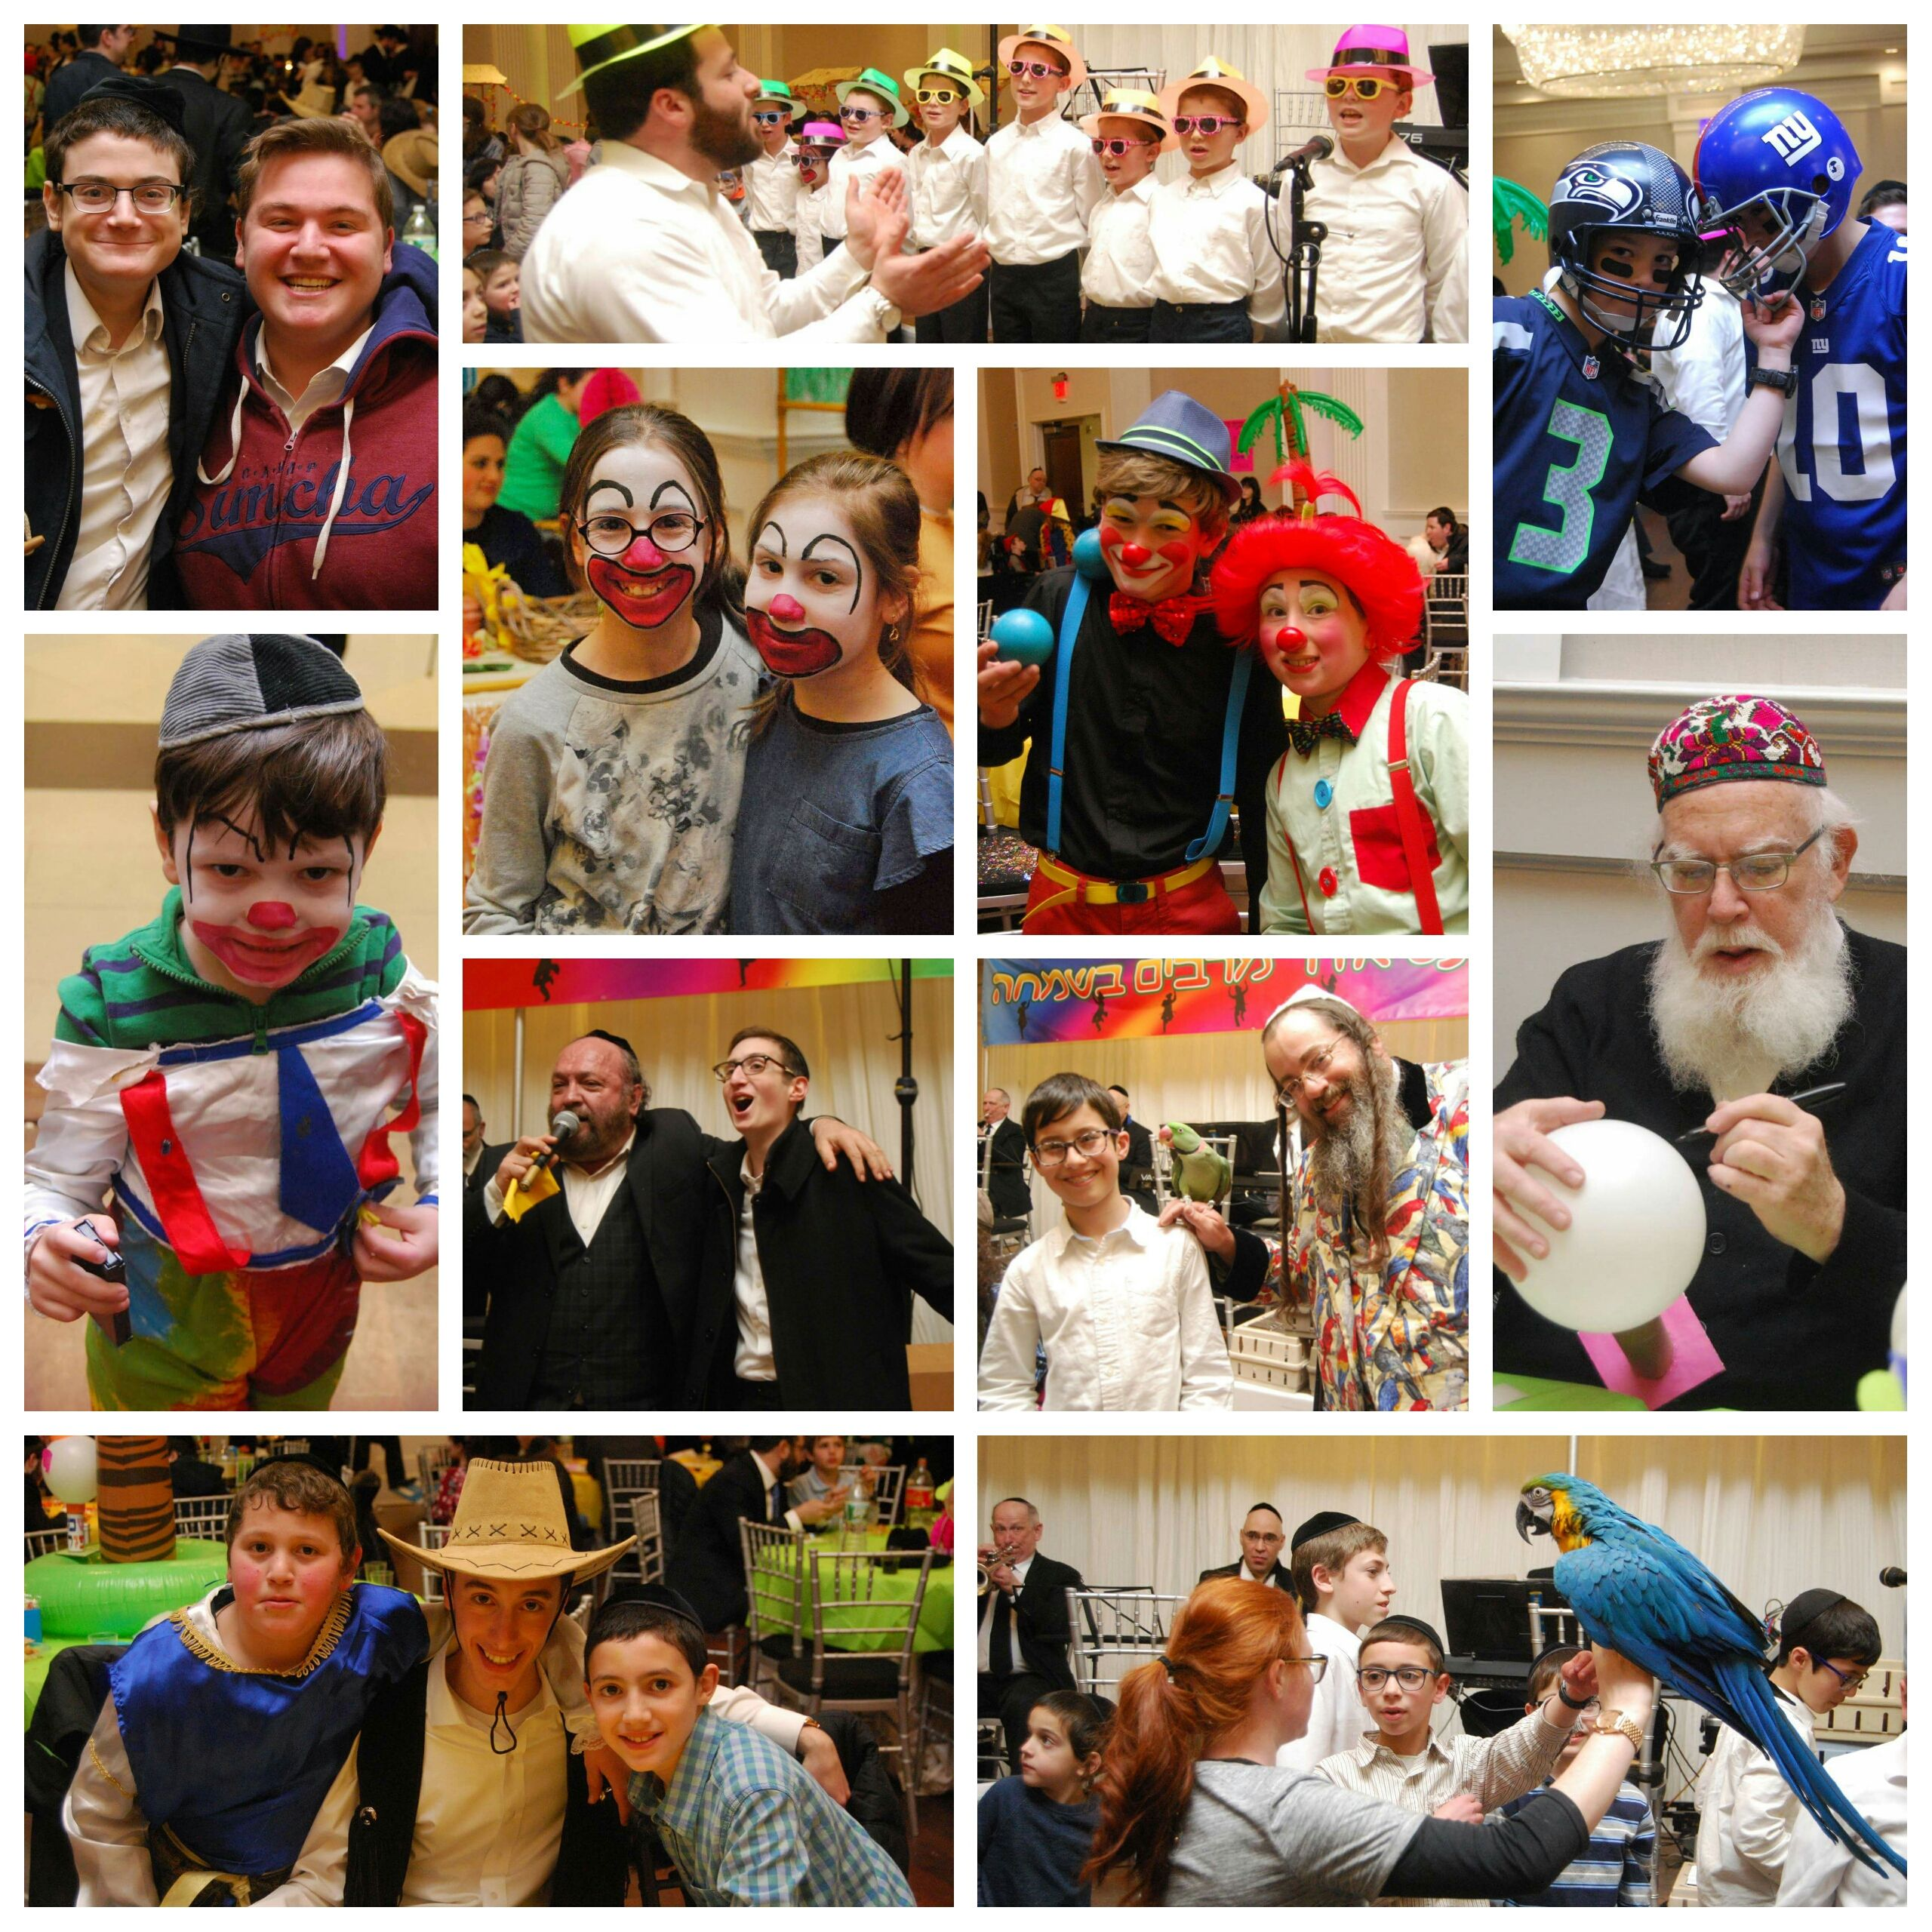 Hundreds of children, families, and volunteers were transported to a tropical island at Chai Lifeline New Jersey's Annual Purim Party at Ateres Reva in Lakewood, NJ. The afternoon featured a performance by the Parrot Rebbi, concert with Yehuda Greeen, incredible crafts with Rabbi Yisroel Braunstein, a choir of Chai Lifeline children and siblings, delicious buffet, fun rides, activities, crafts, and much more. Many thanks to everyone who made this event possible.